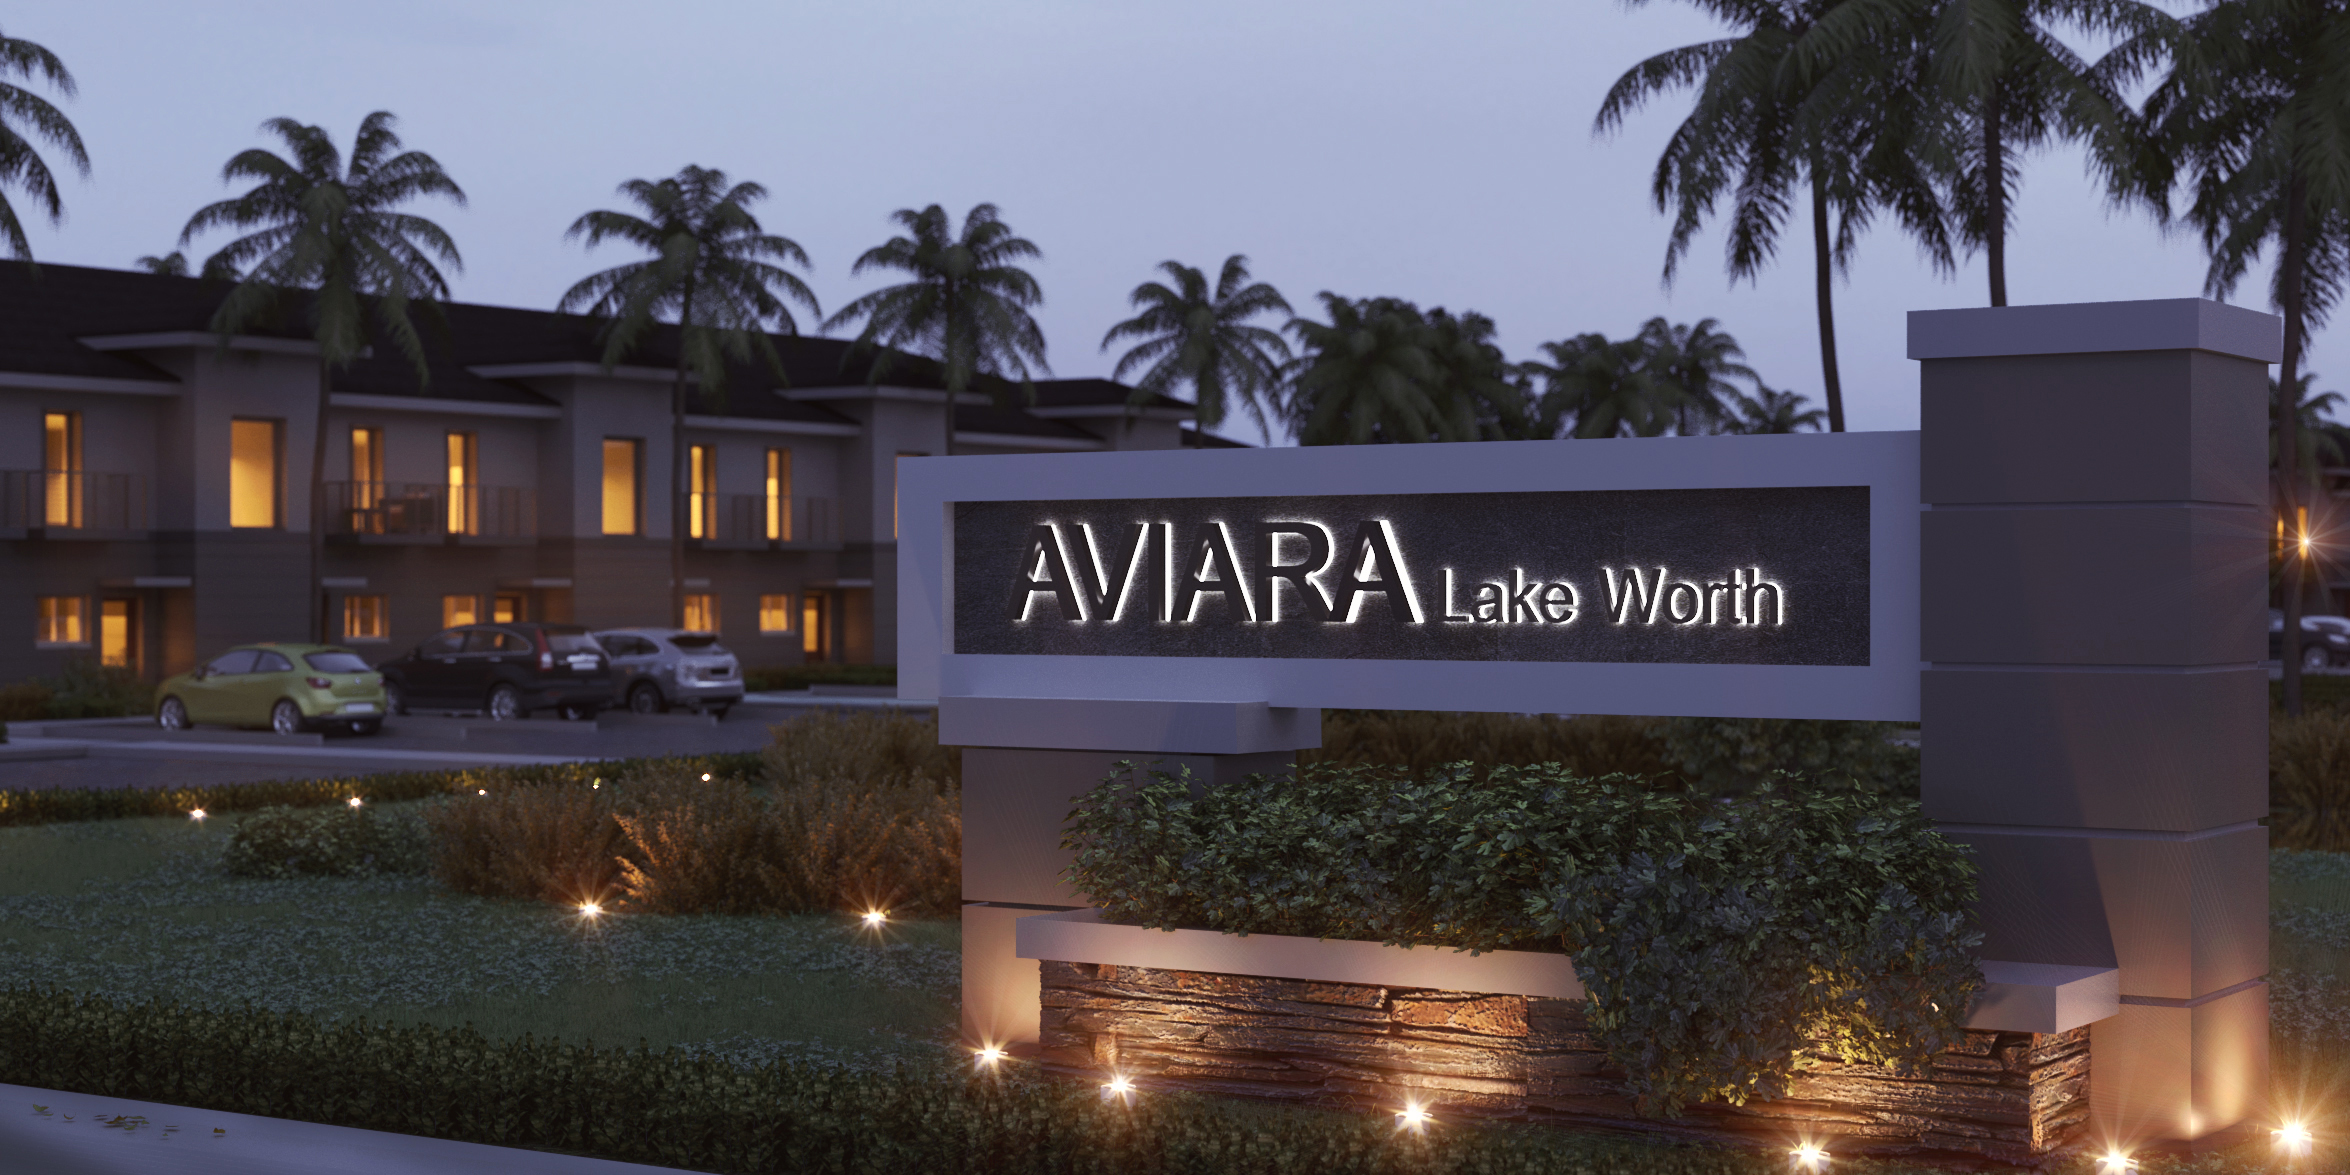 5 Aviara Lake Worth - ArqRender F.jpg